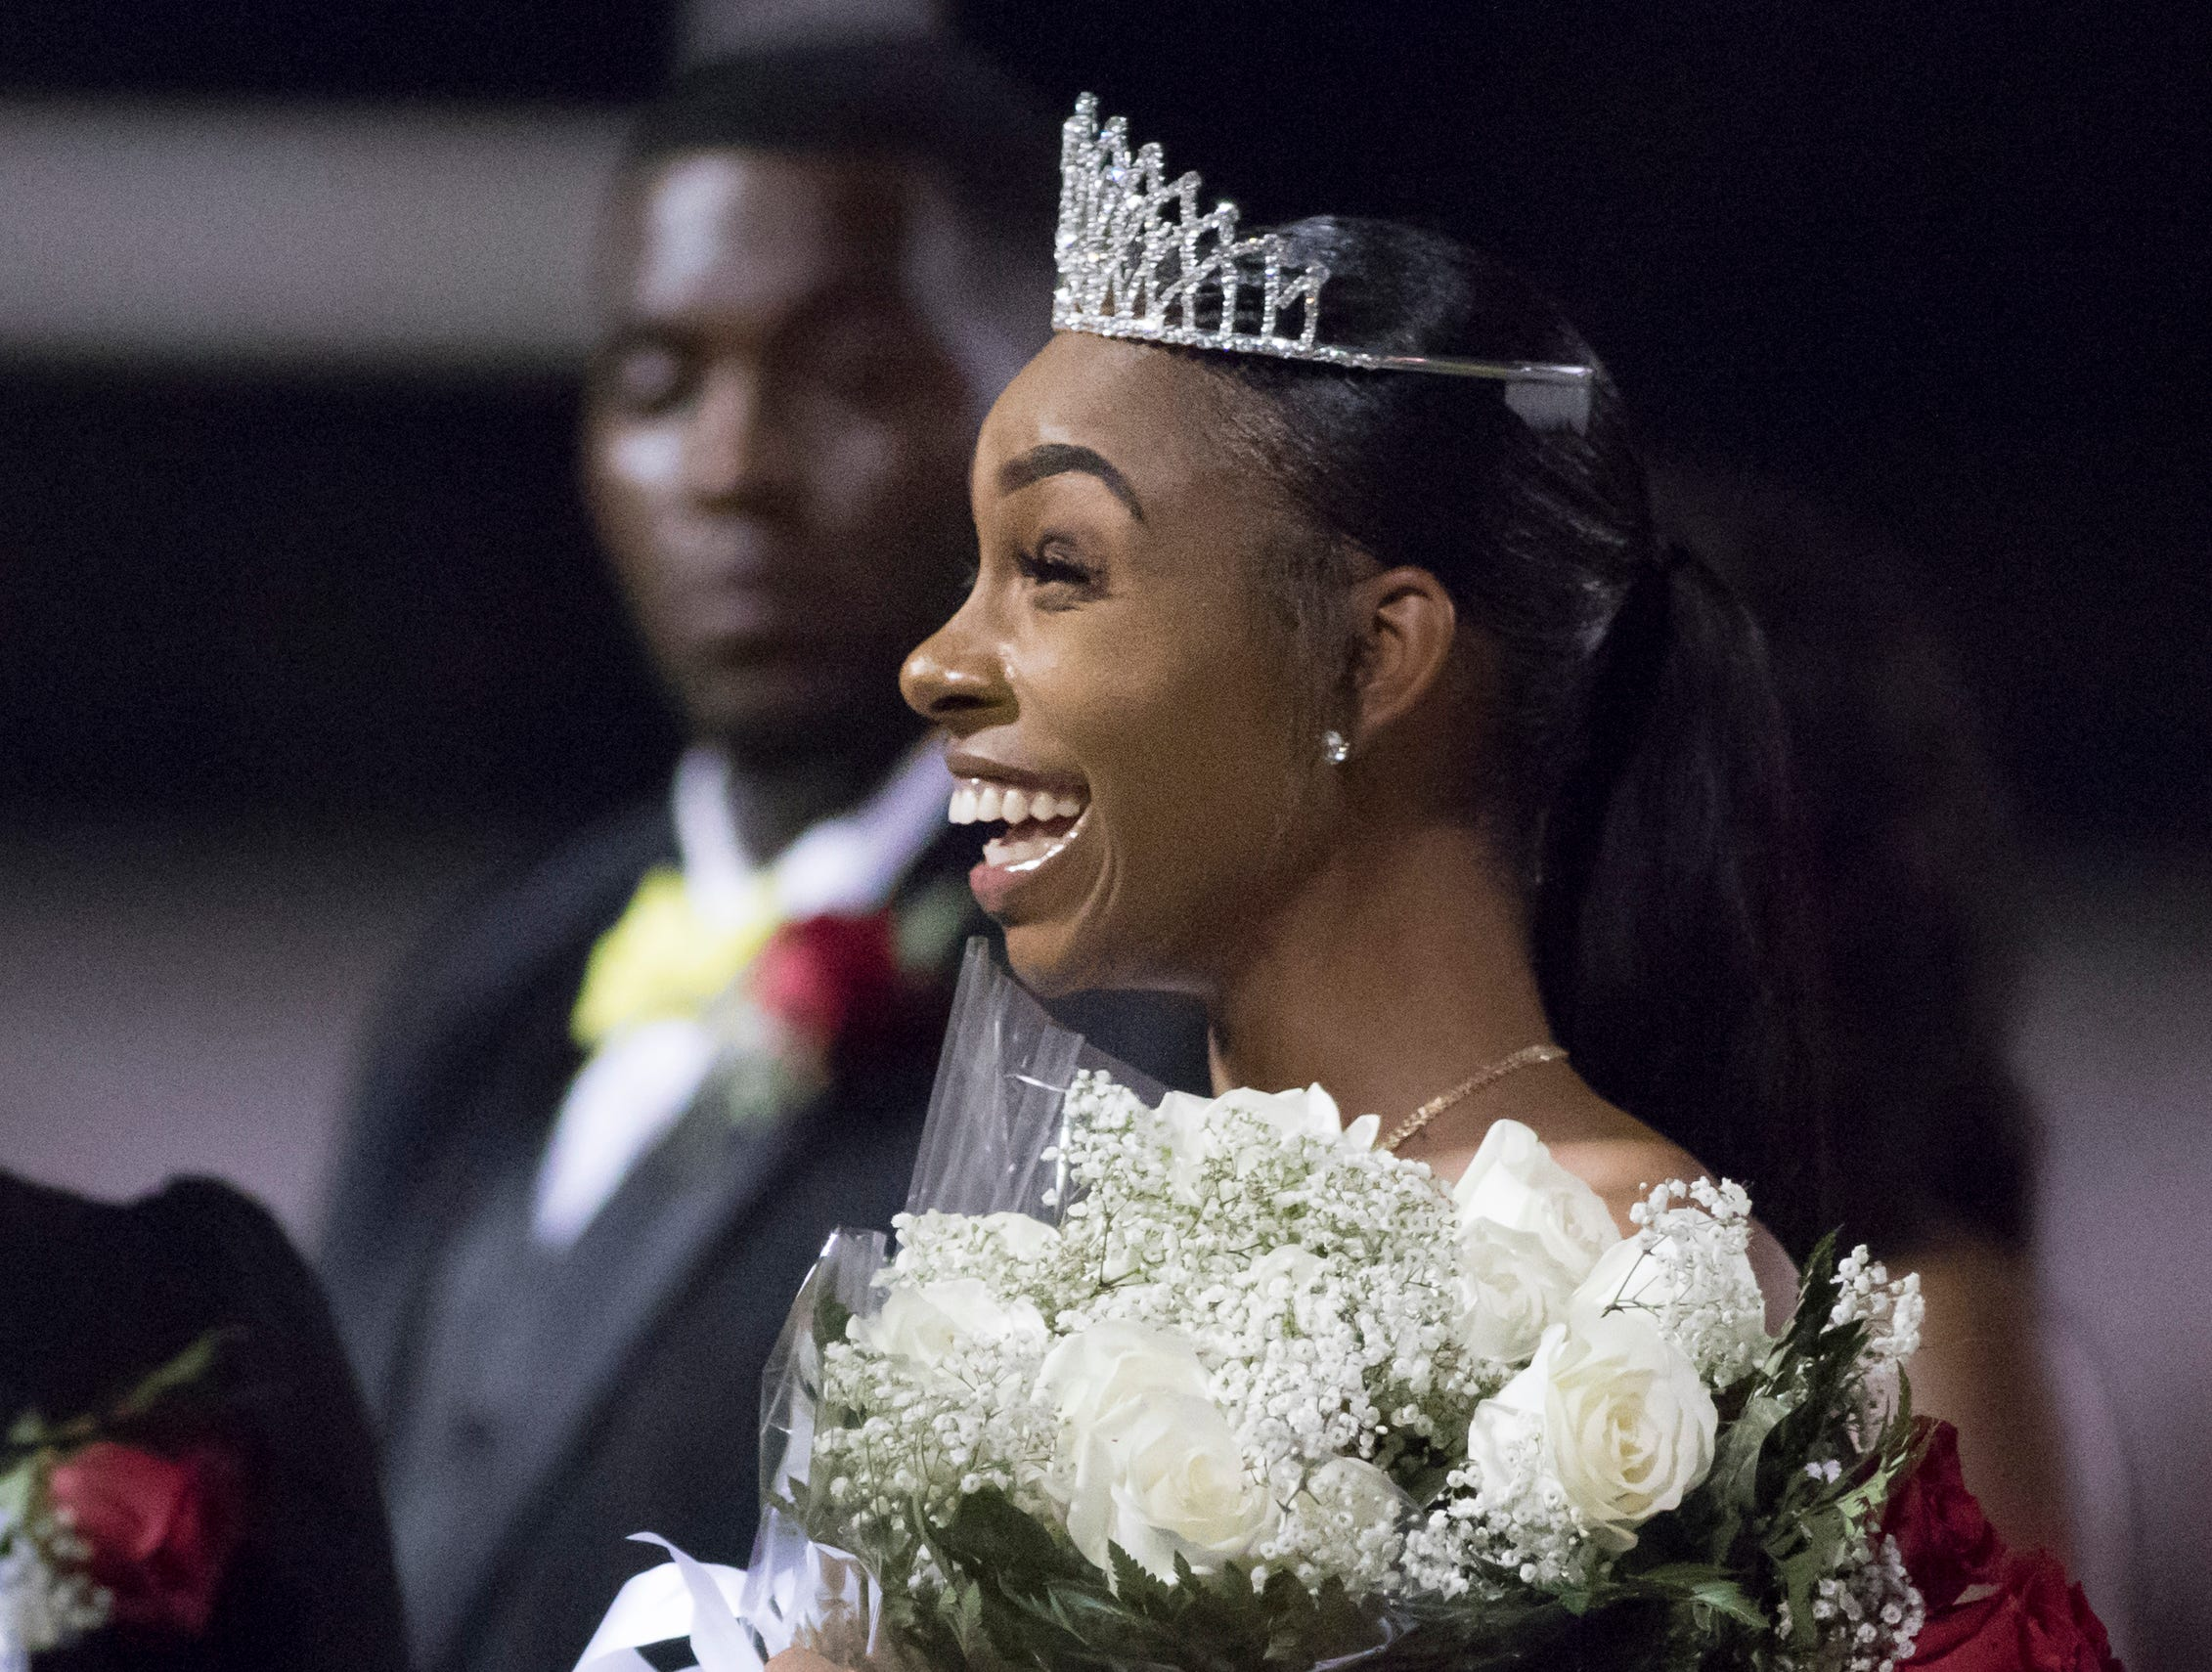 The homecoming queen is crowned at halftime of the West Florida vs Pine Forest football game at Pine Forest High School in Pensacola on Friday, October 5, 2018.